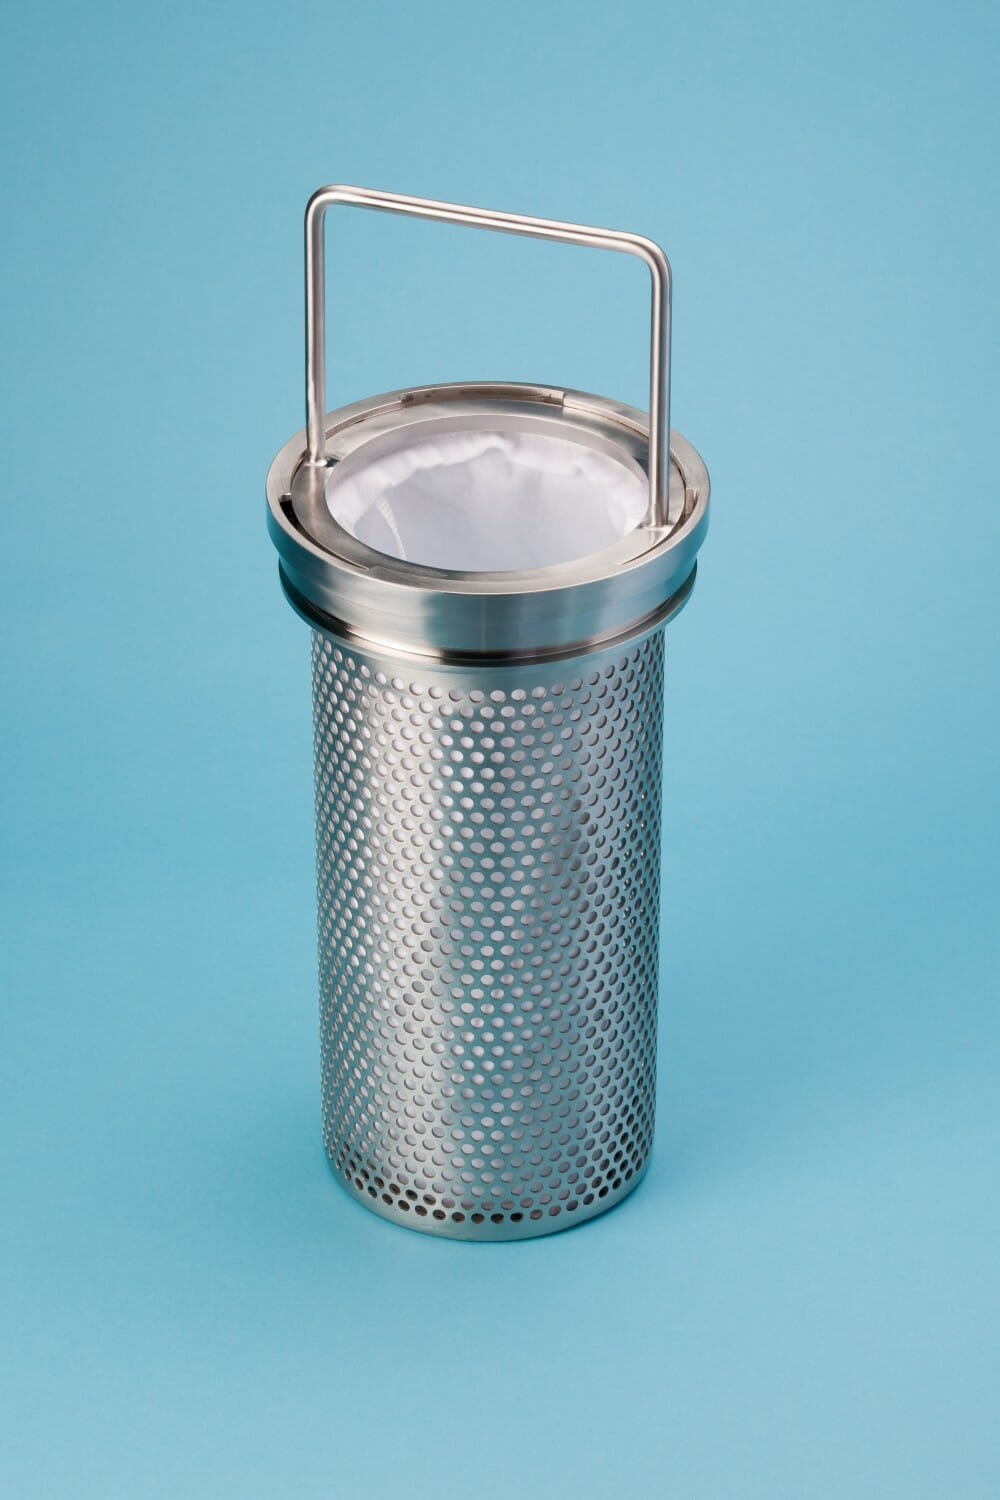 Sanitary Strainers - Inline Pipe, Filter & Basket Strainers ...